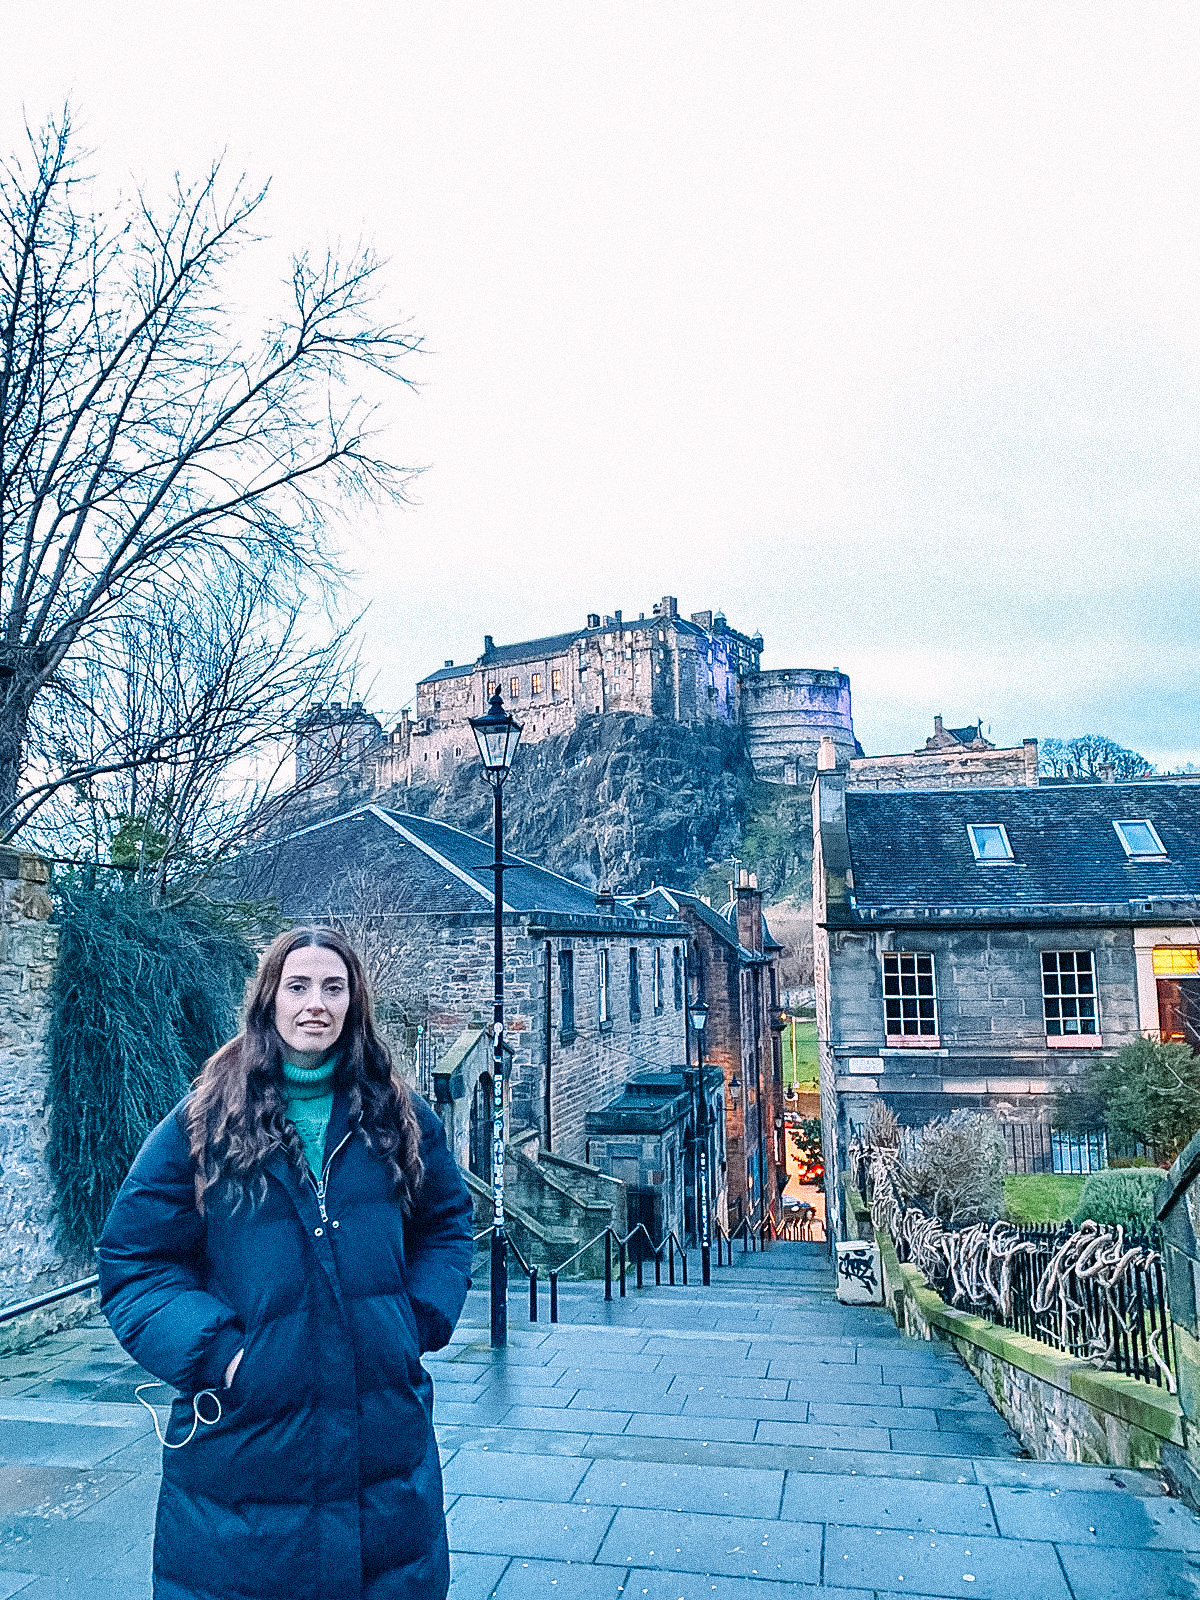 Miss Jean Brodie Steps in Edinburgh - weekend in Edinburgh